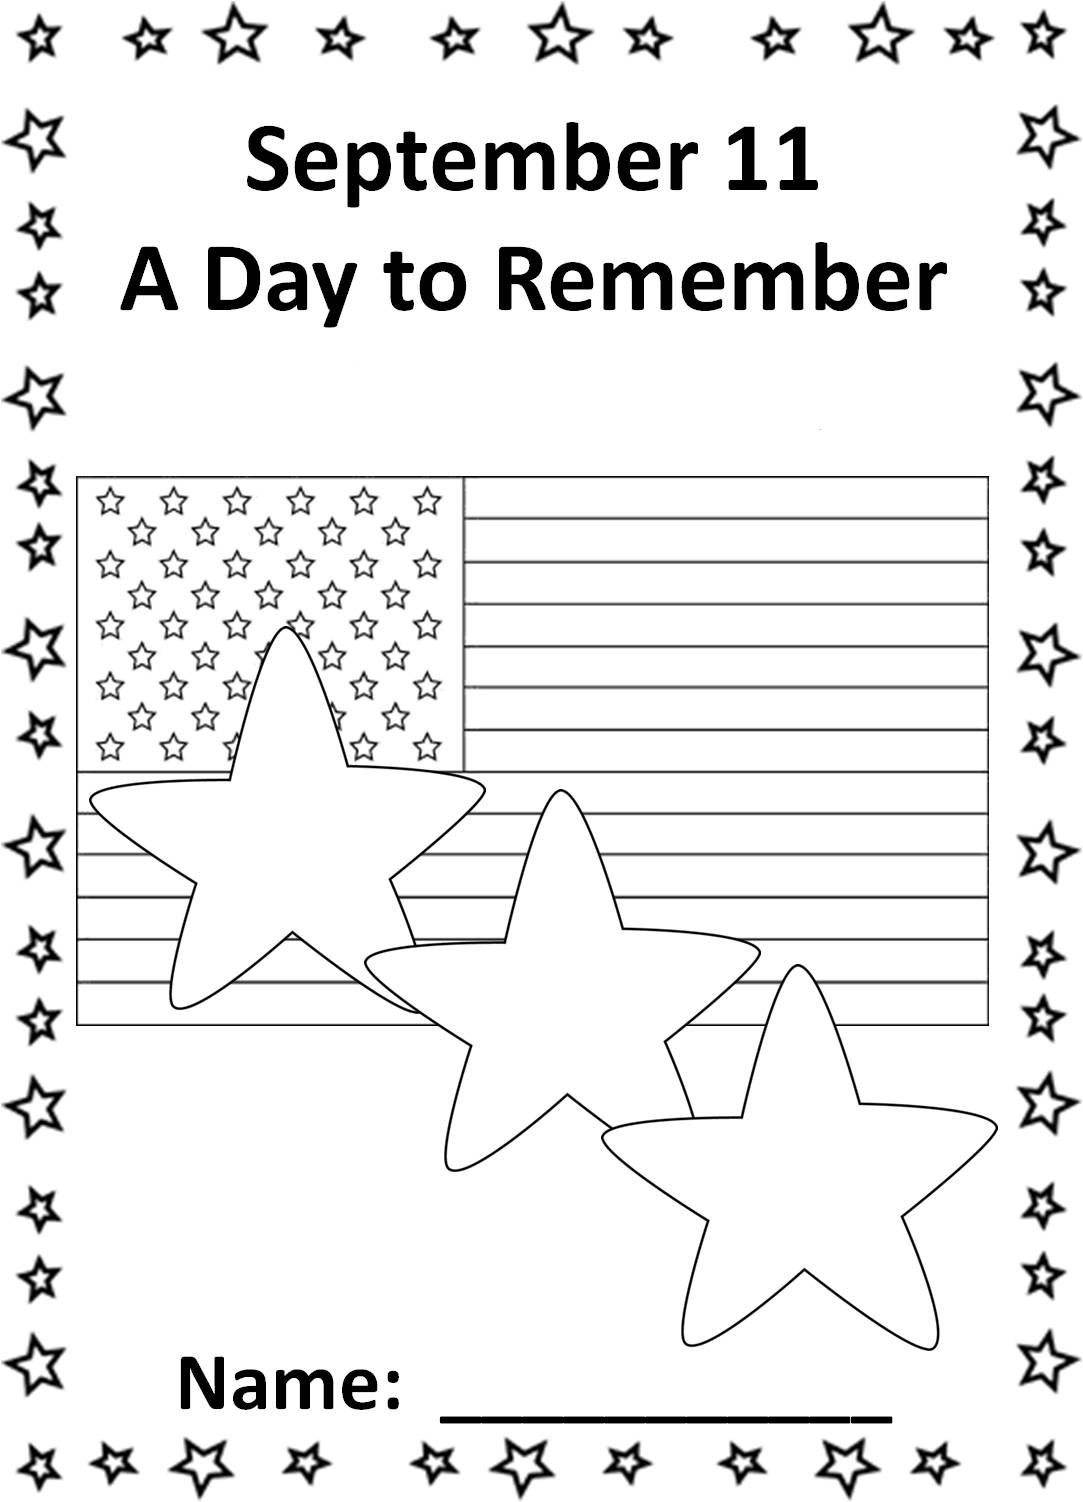 9 11 pictures to color 9 11 coloring pages september 11 coloring pages crafted to 11 9 color pictures